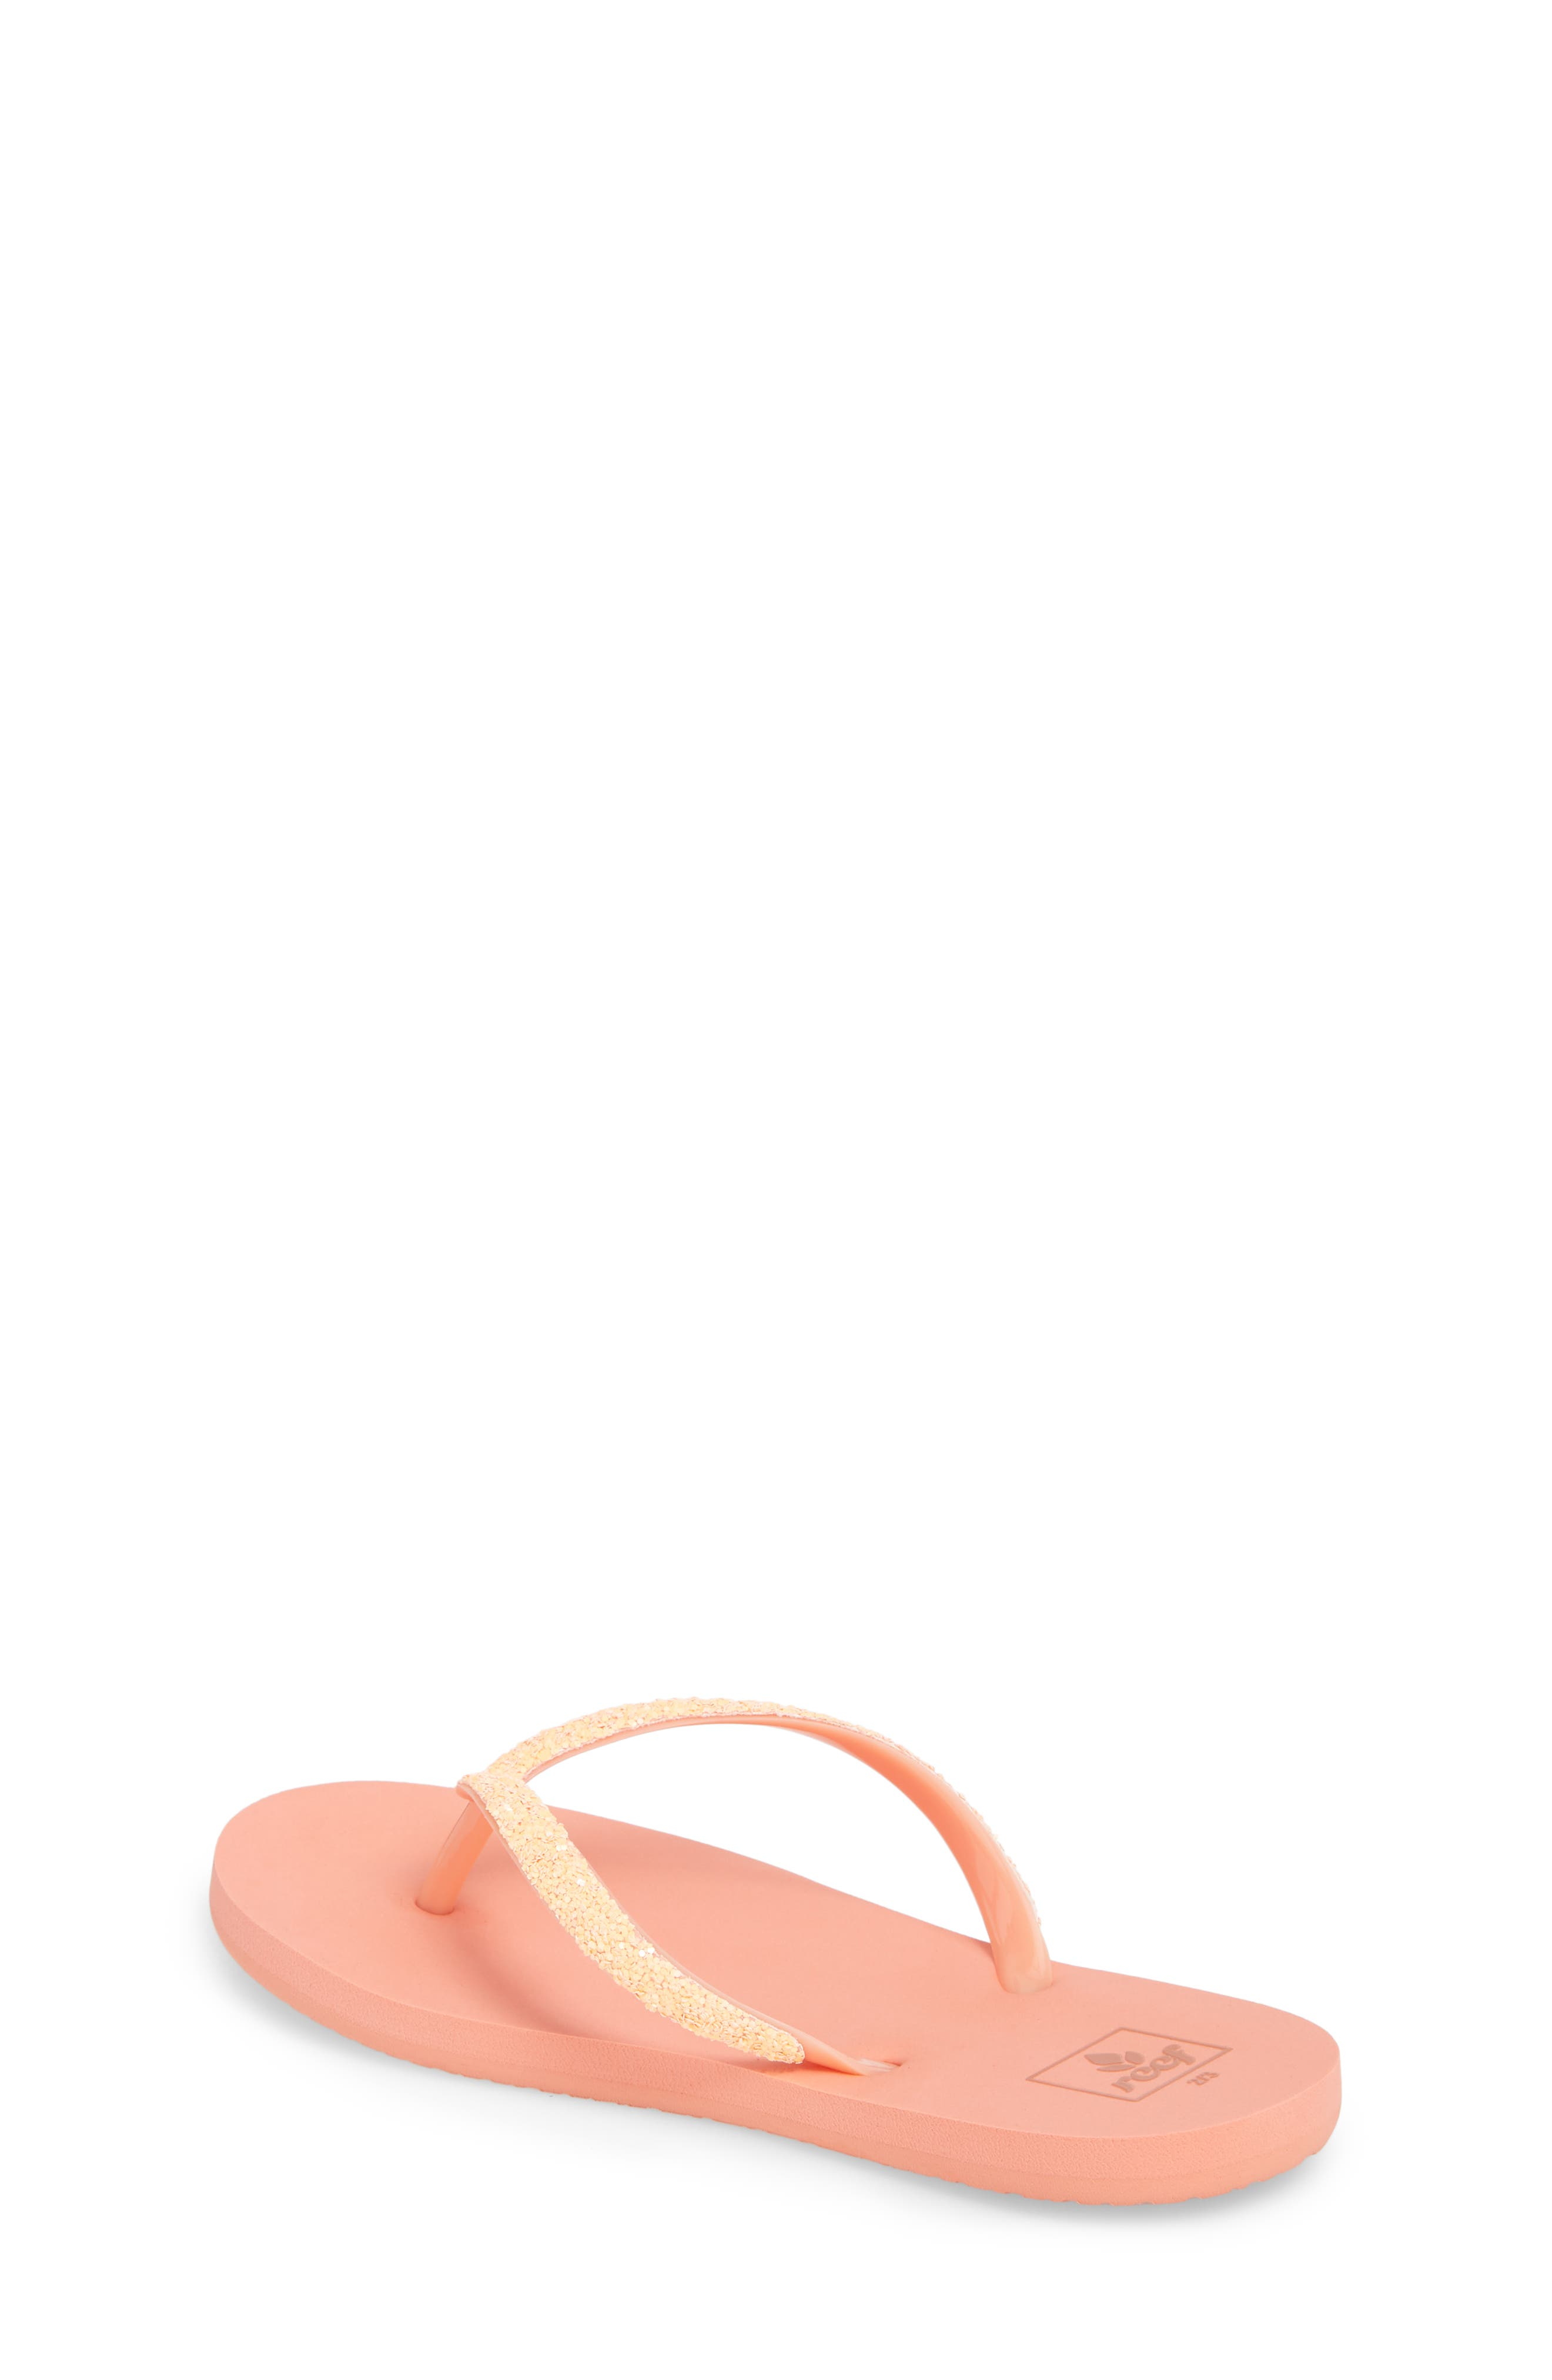 Little Stargazer Glitter Sandal,                             Alternate thumbnail 2, color,                             Orange